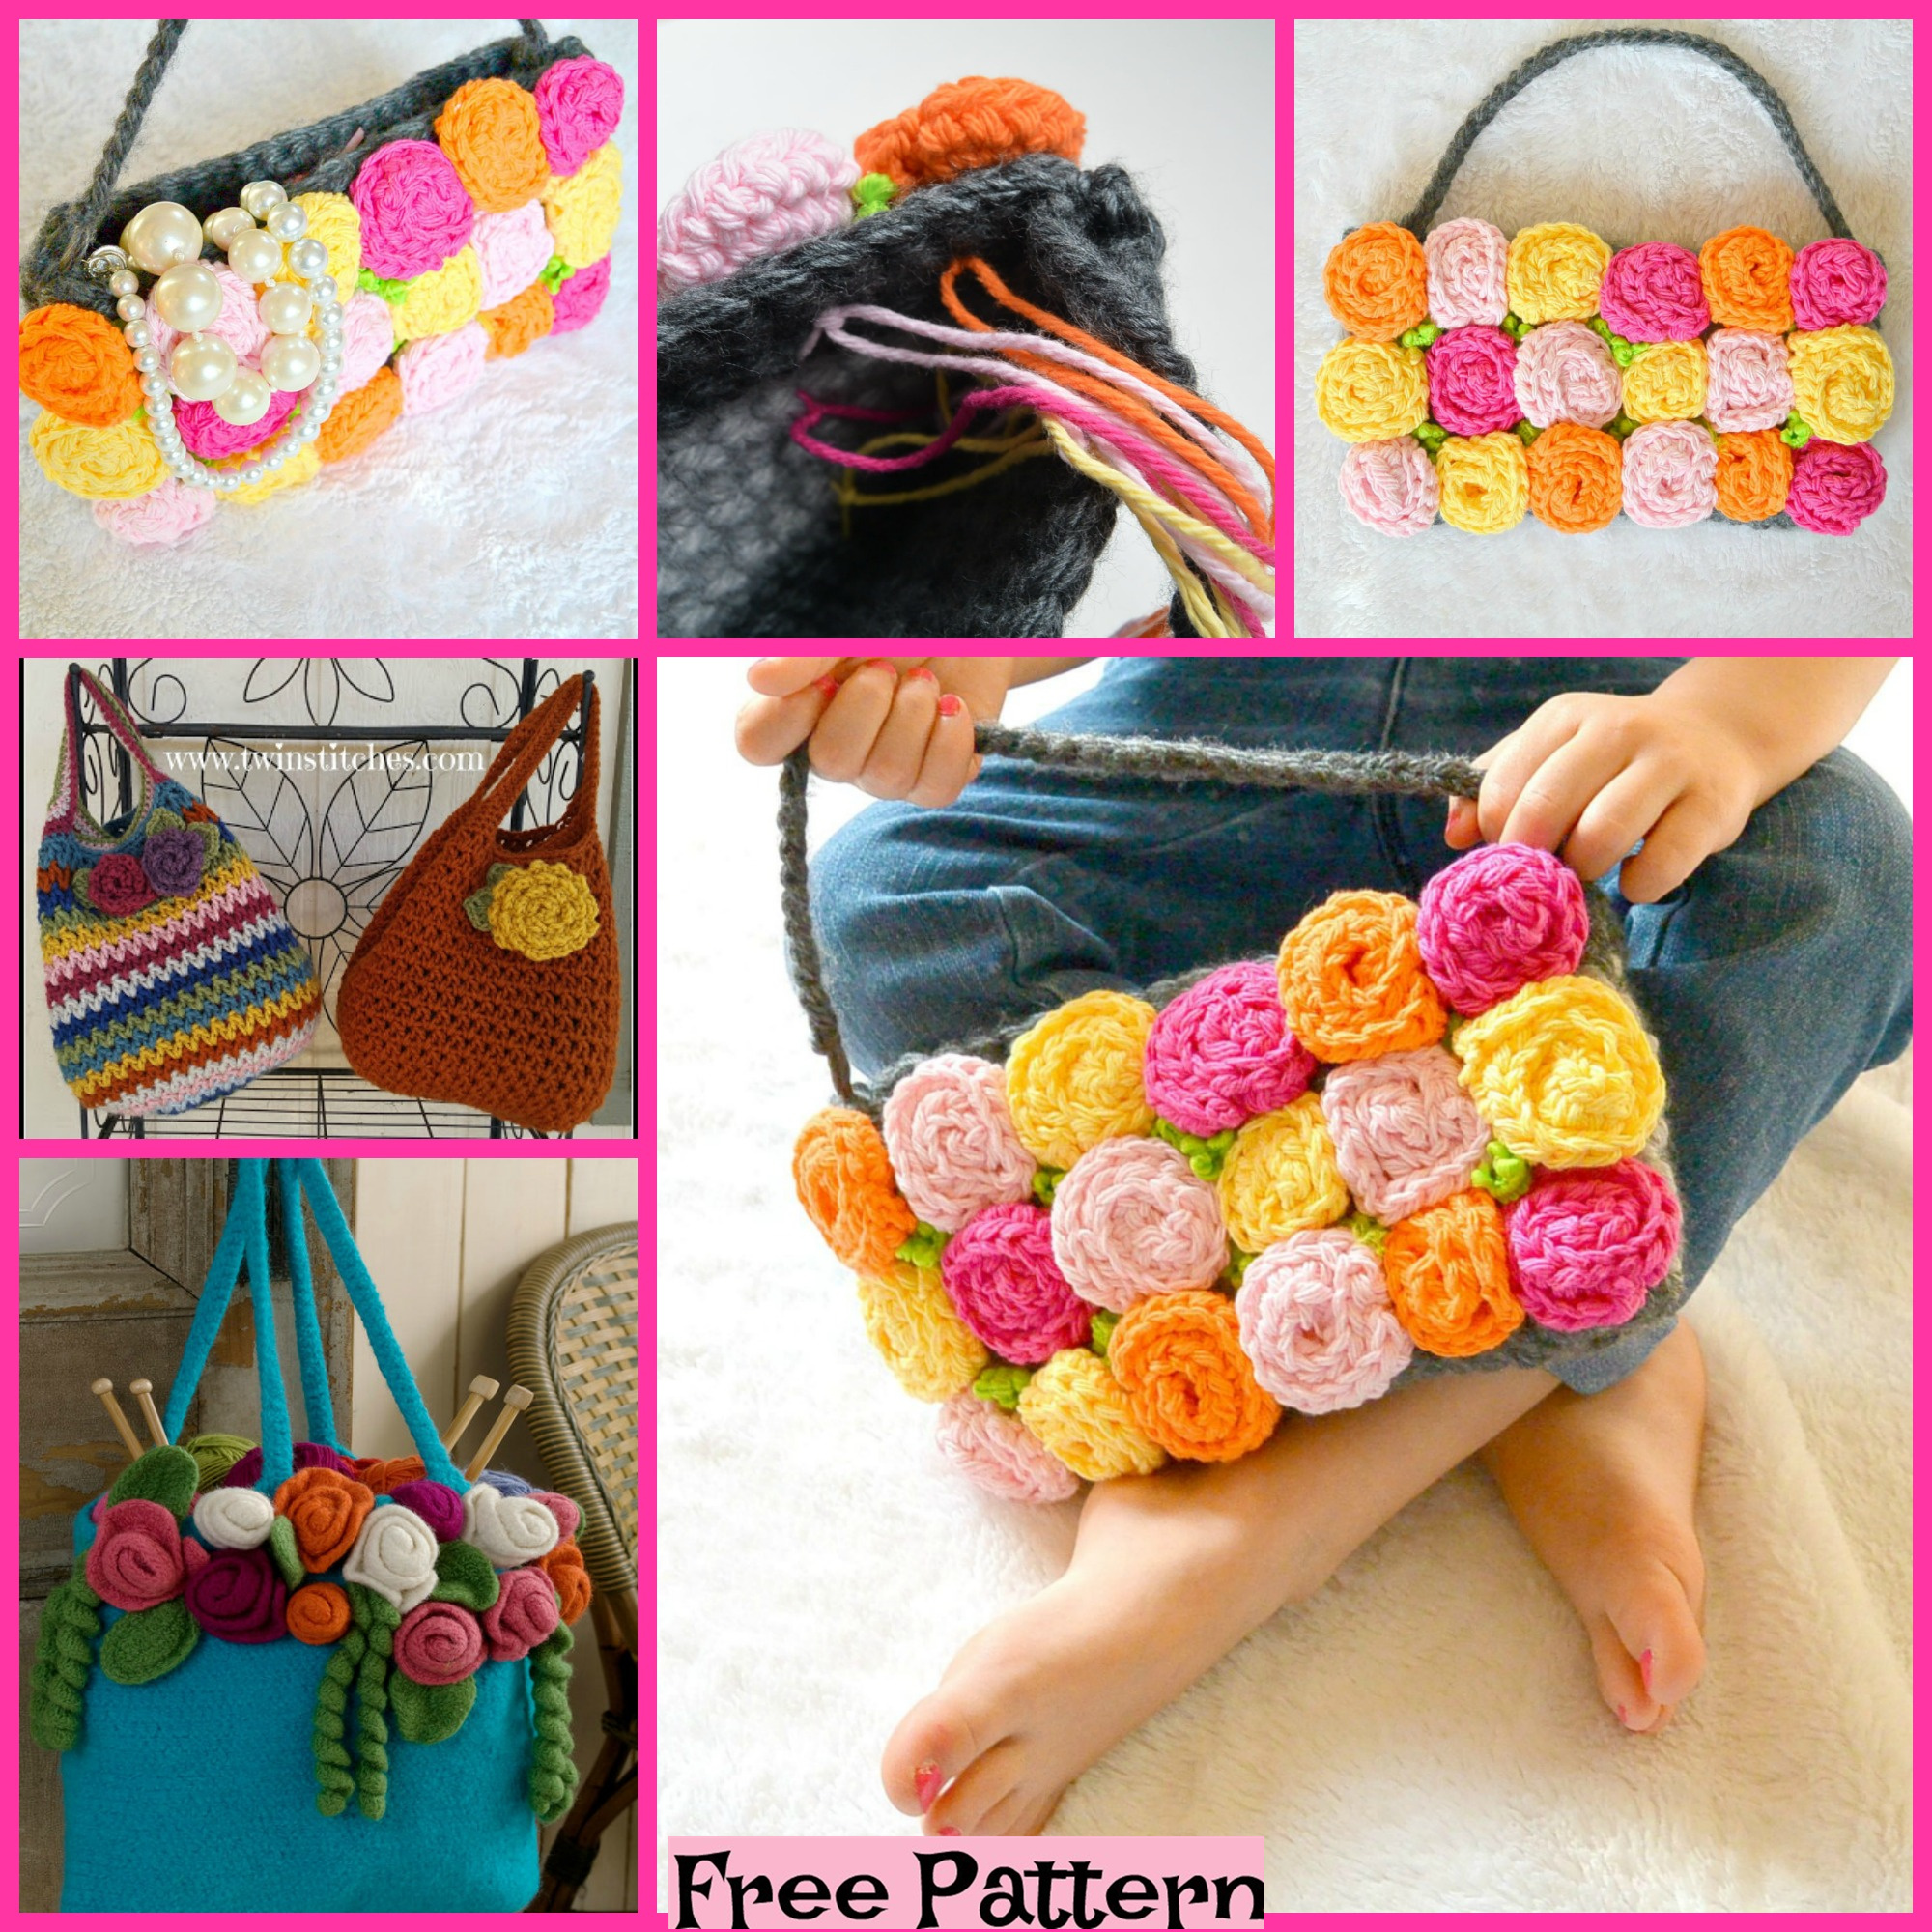 diy4ever-Crochet Rose Purse - Free Patterns